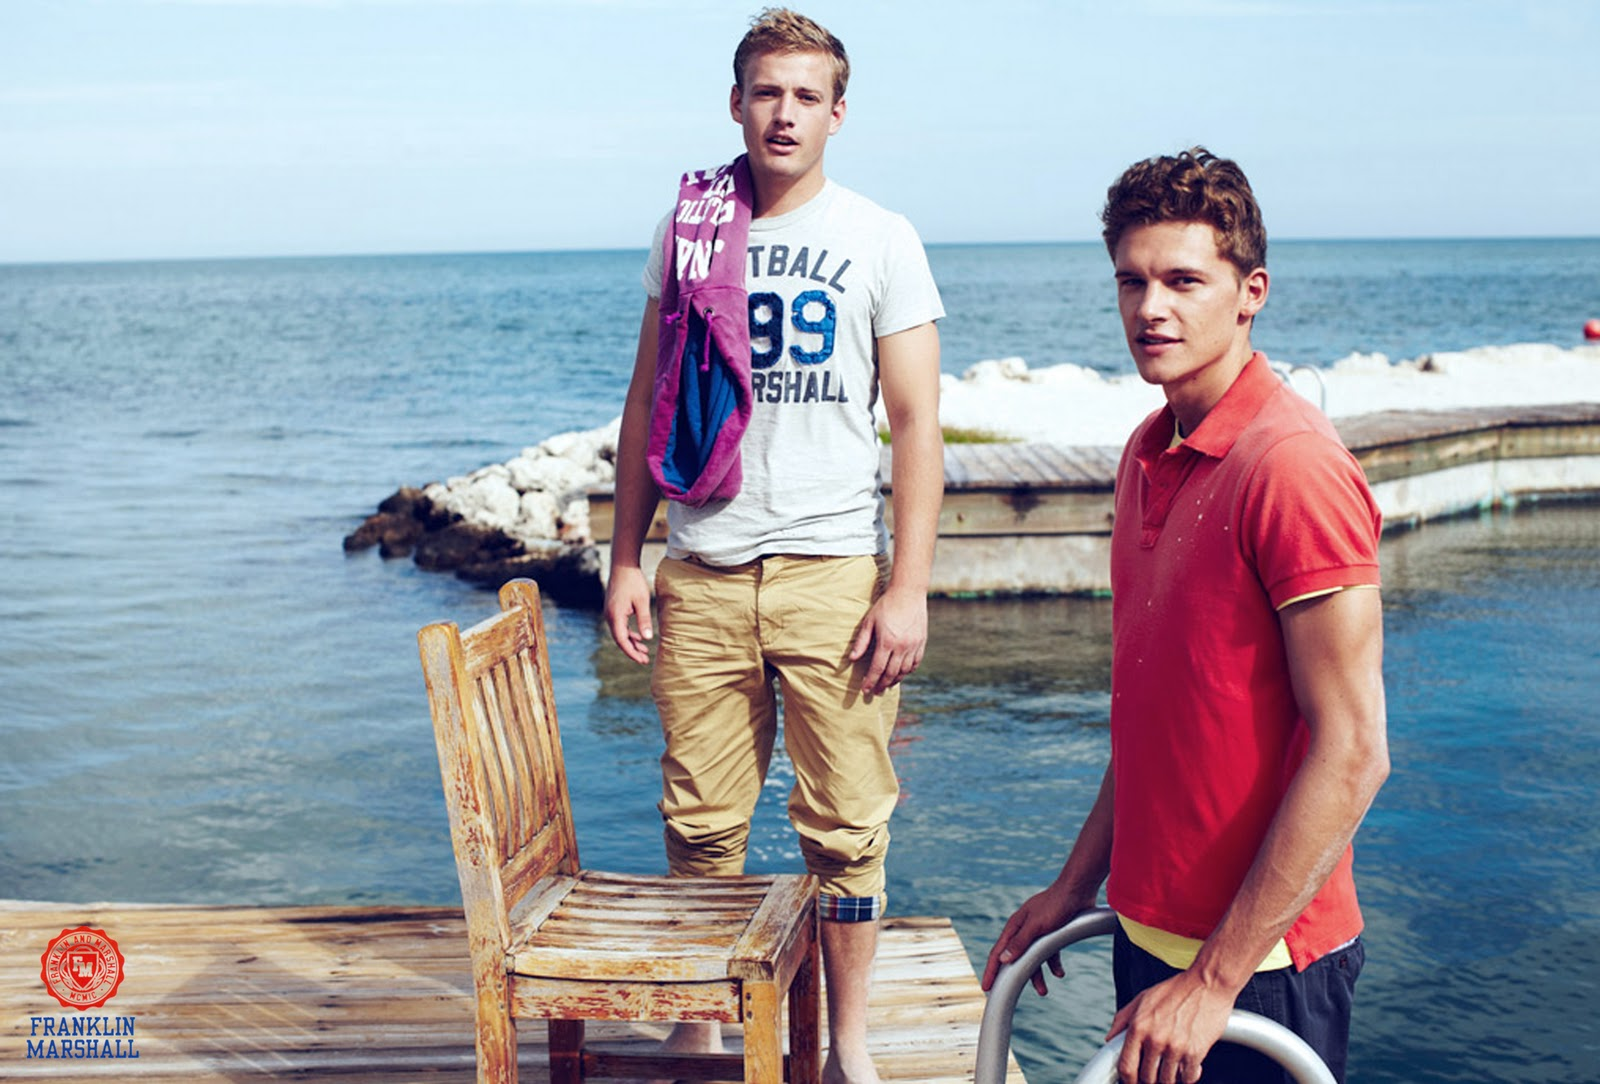 Blaine Cook & Dan Cameron for Franklin Marshall Spring 2011 Campaign